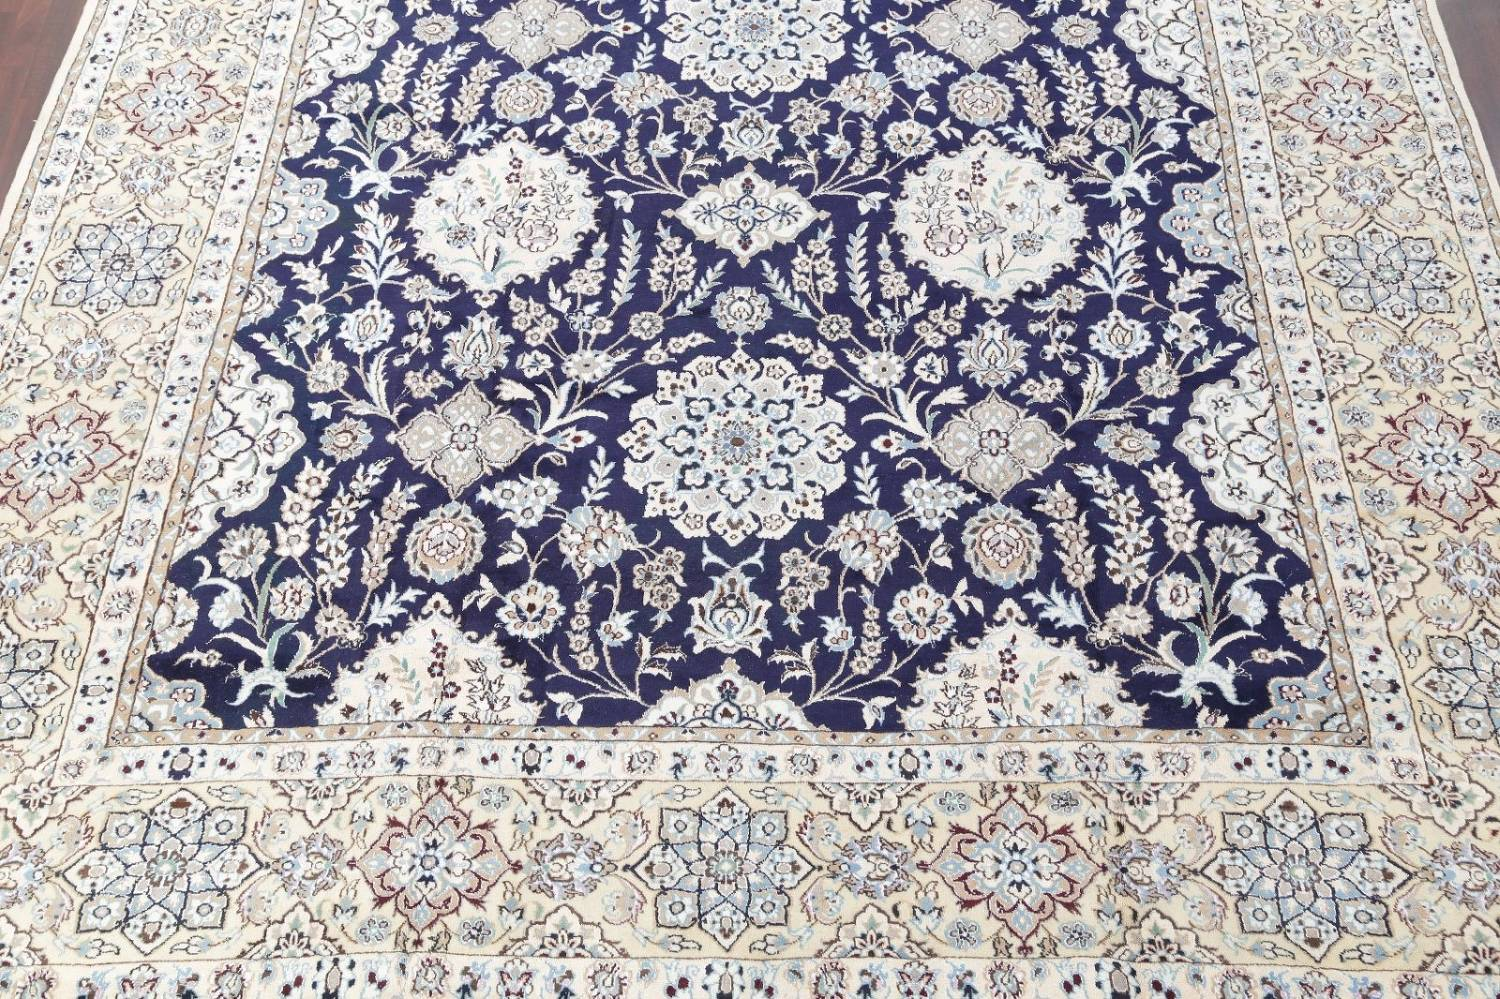 Palace Sized Wool/Silk Nain Persian Blue Rug 13x20 image 5